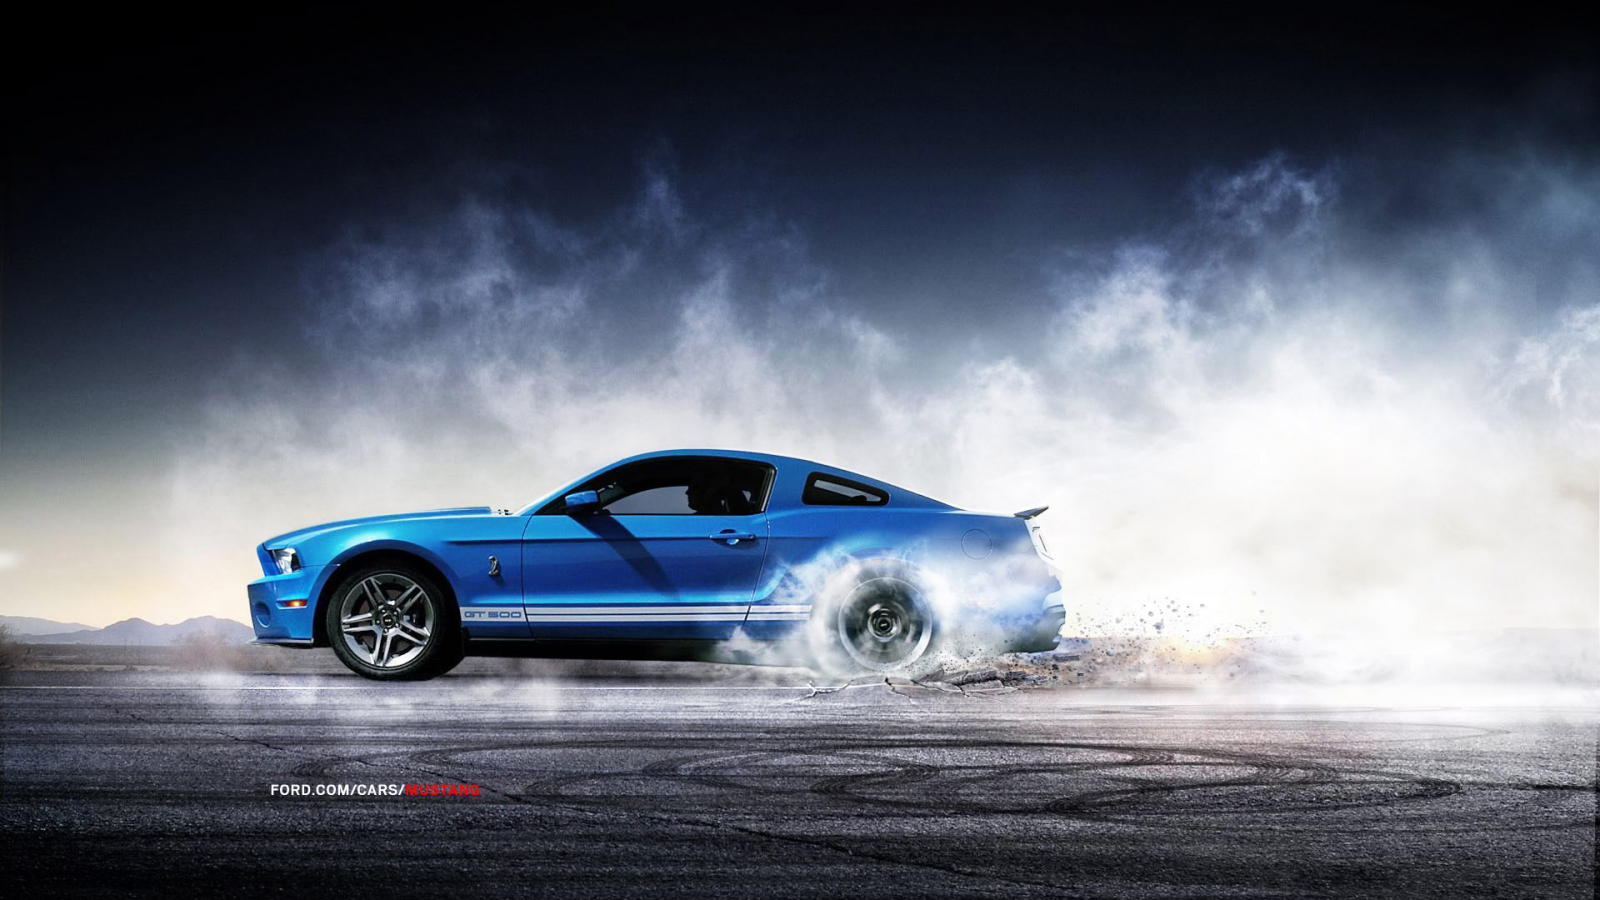 Free Download Ford Mustang Shelby Wallpaper Hd 1217 Wallpaper Cool Walldiskpaper 1920x1200 For Your Desktop Mobile Tablet Explore 49 Mustang Wallpaper For Computer Hd Mustang Wallpapers Shelby Mustang Wallpaper